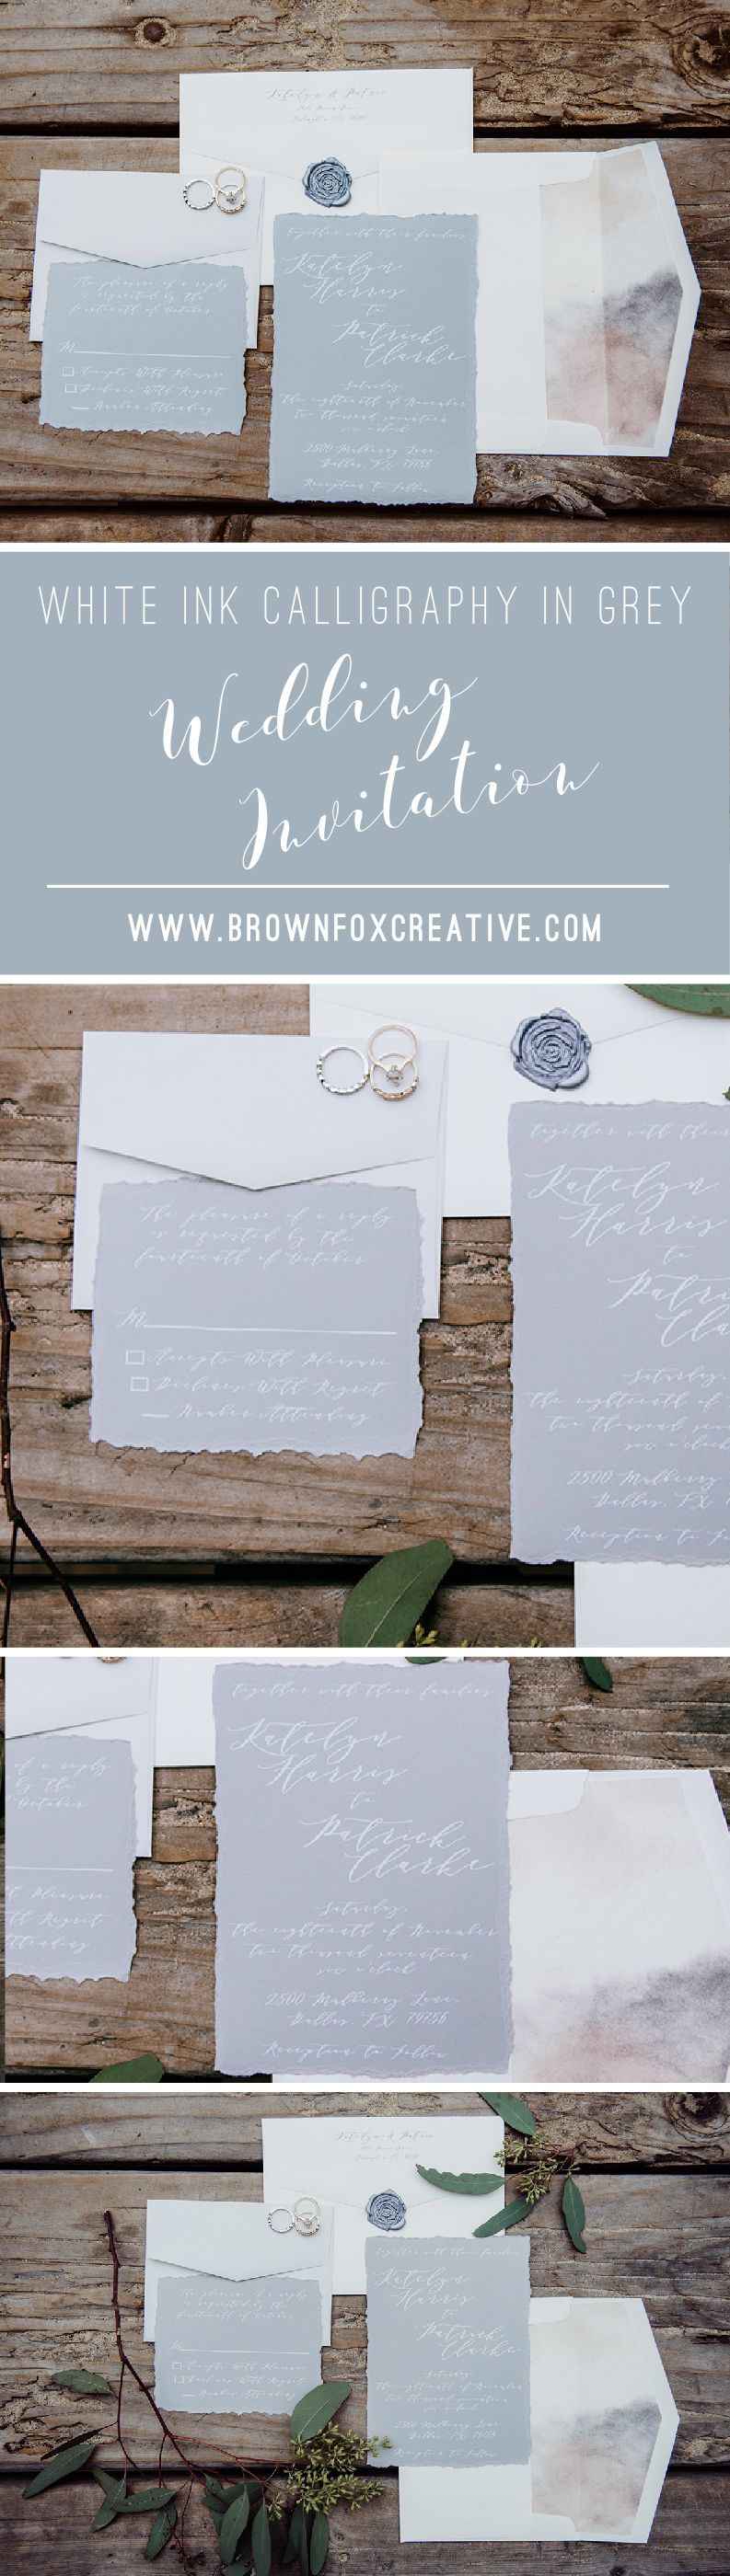 fun modern wedding invitations%0A White Ink Calligraphy Natural Modern Wedding Invitation in Grey and Ivory  u      Envelope Liner  RSVP